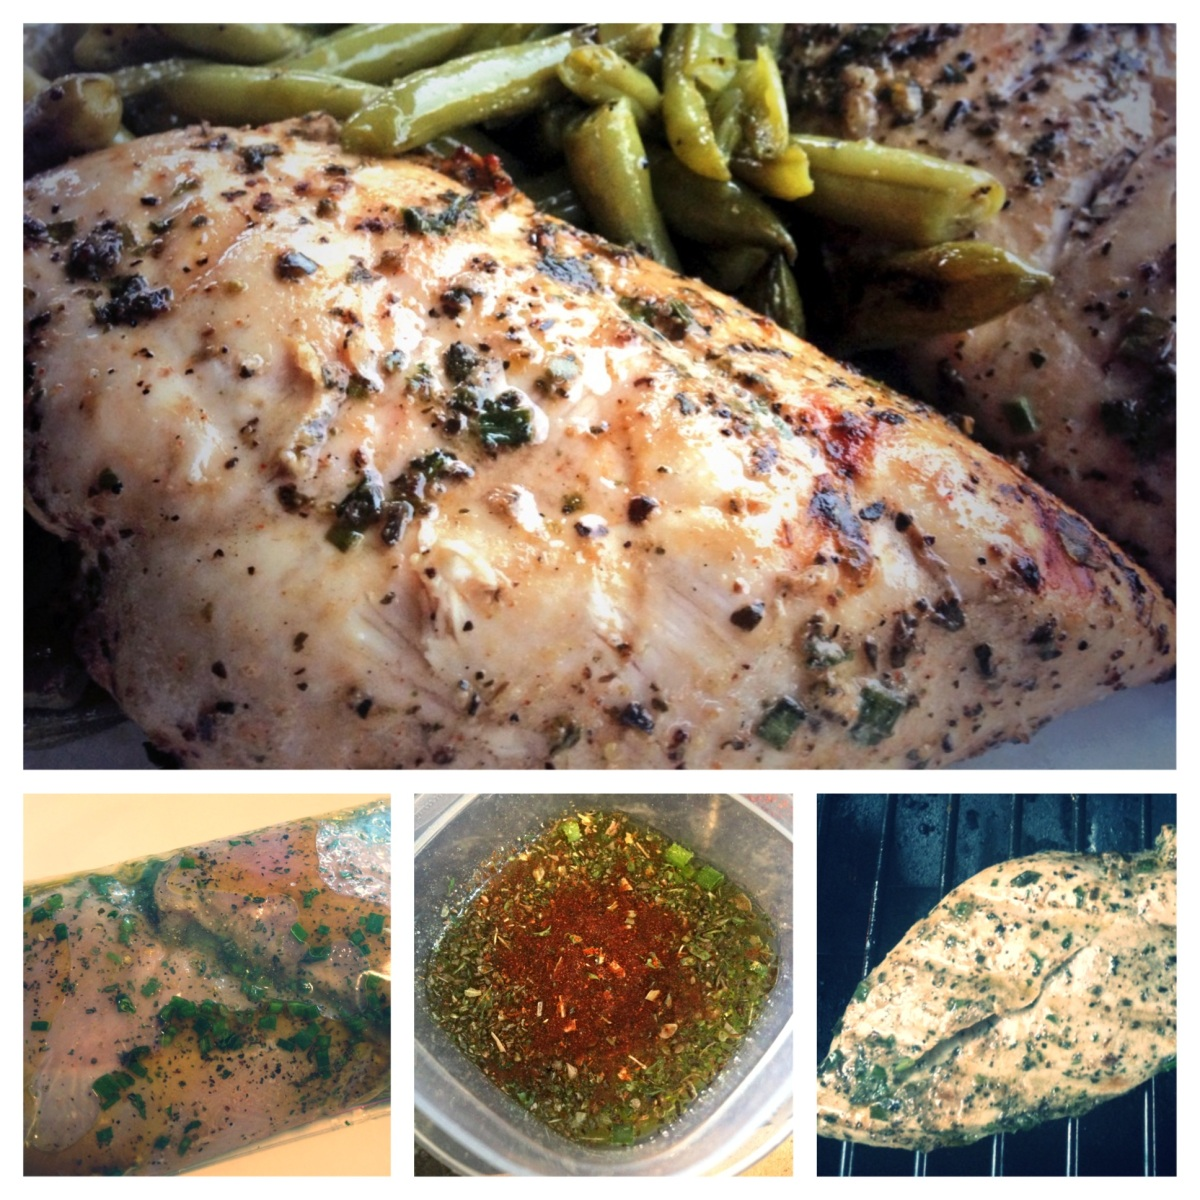 Low FODMAP Red Wine Chicken or Steak Marinade Recipe | Living Happy with IBS